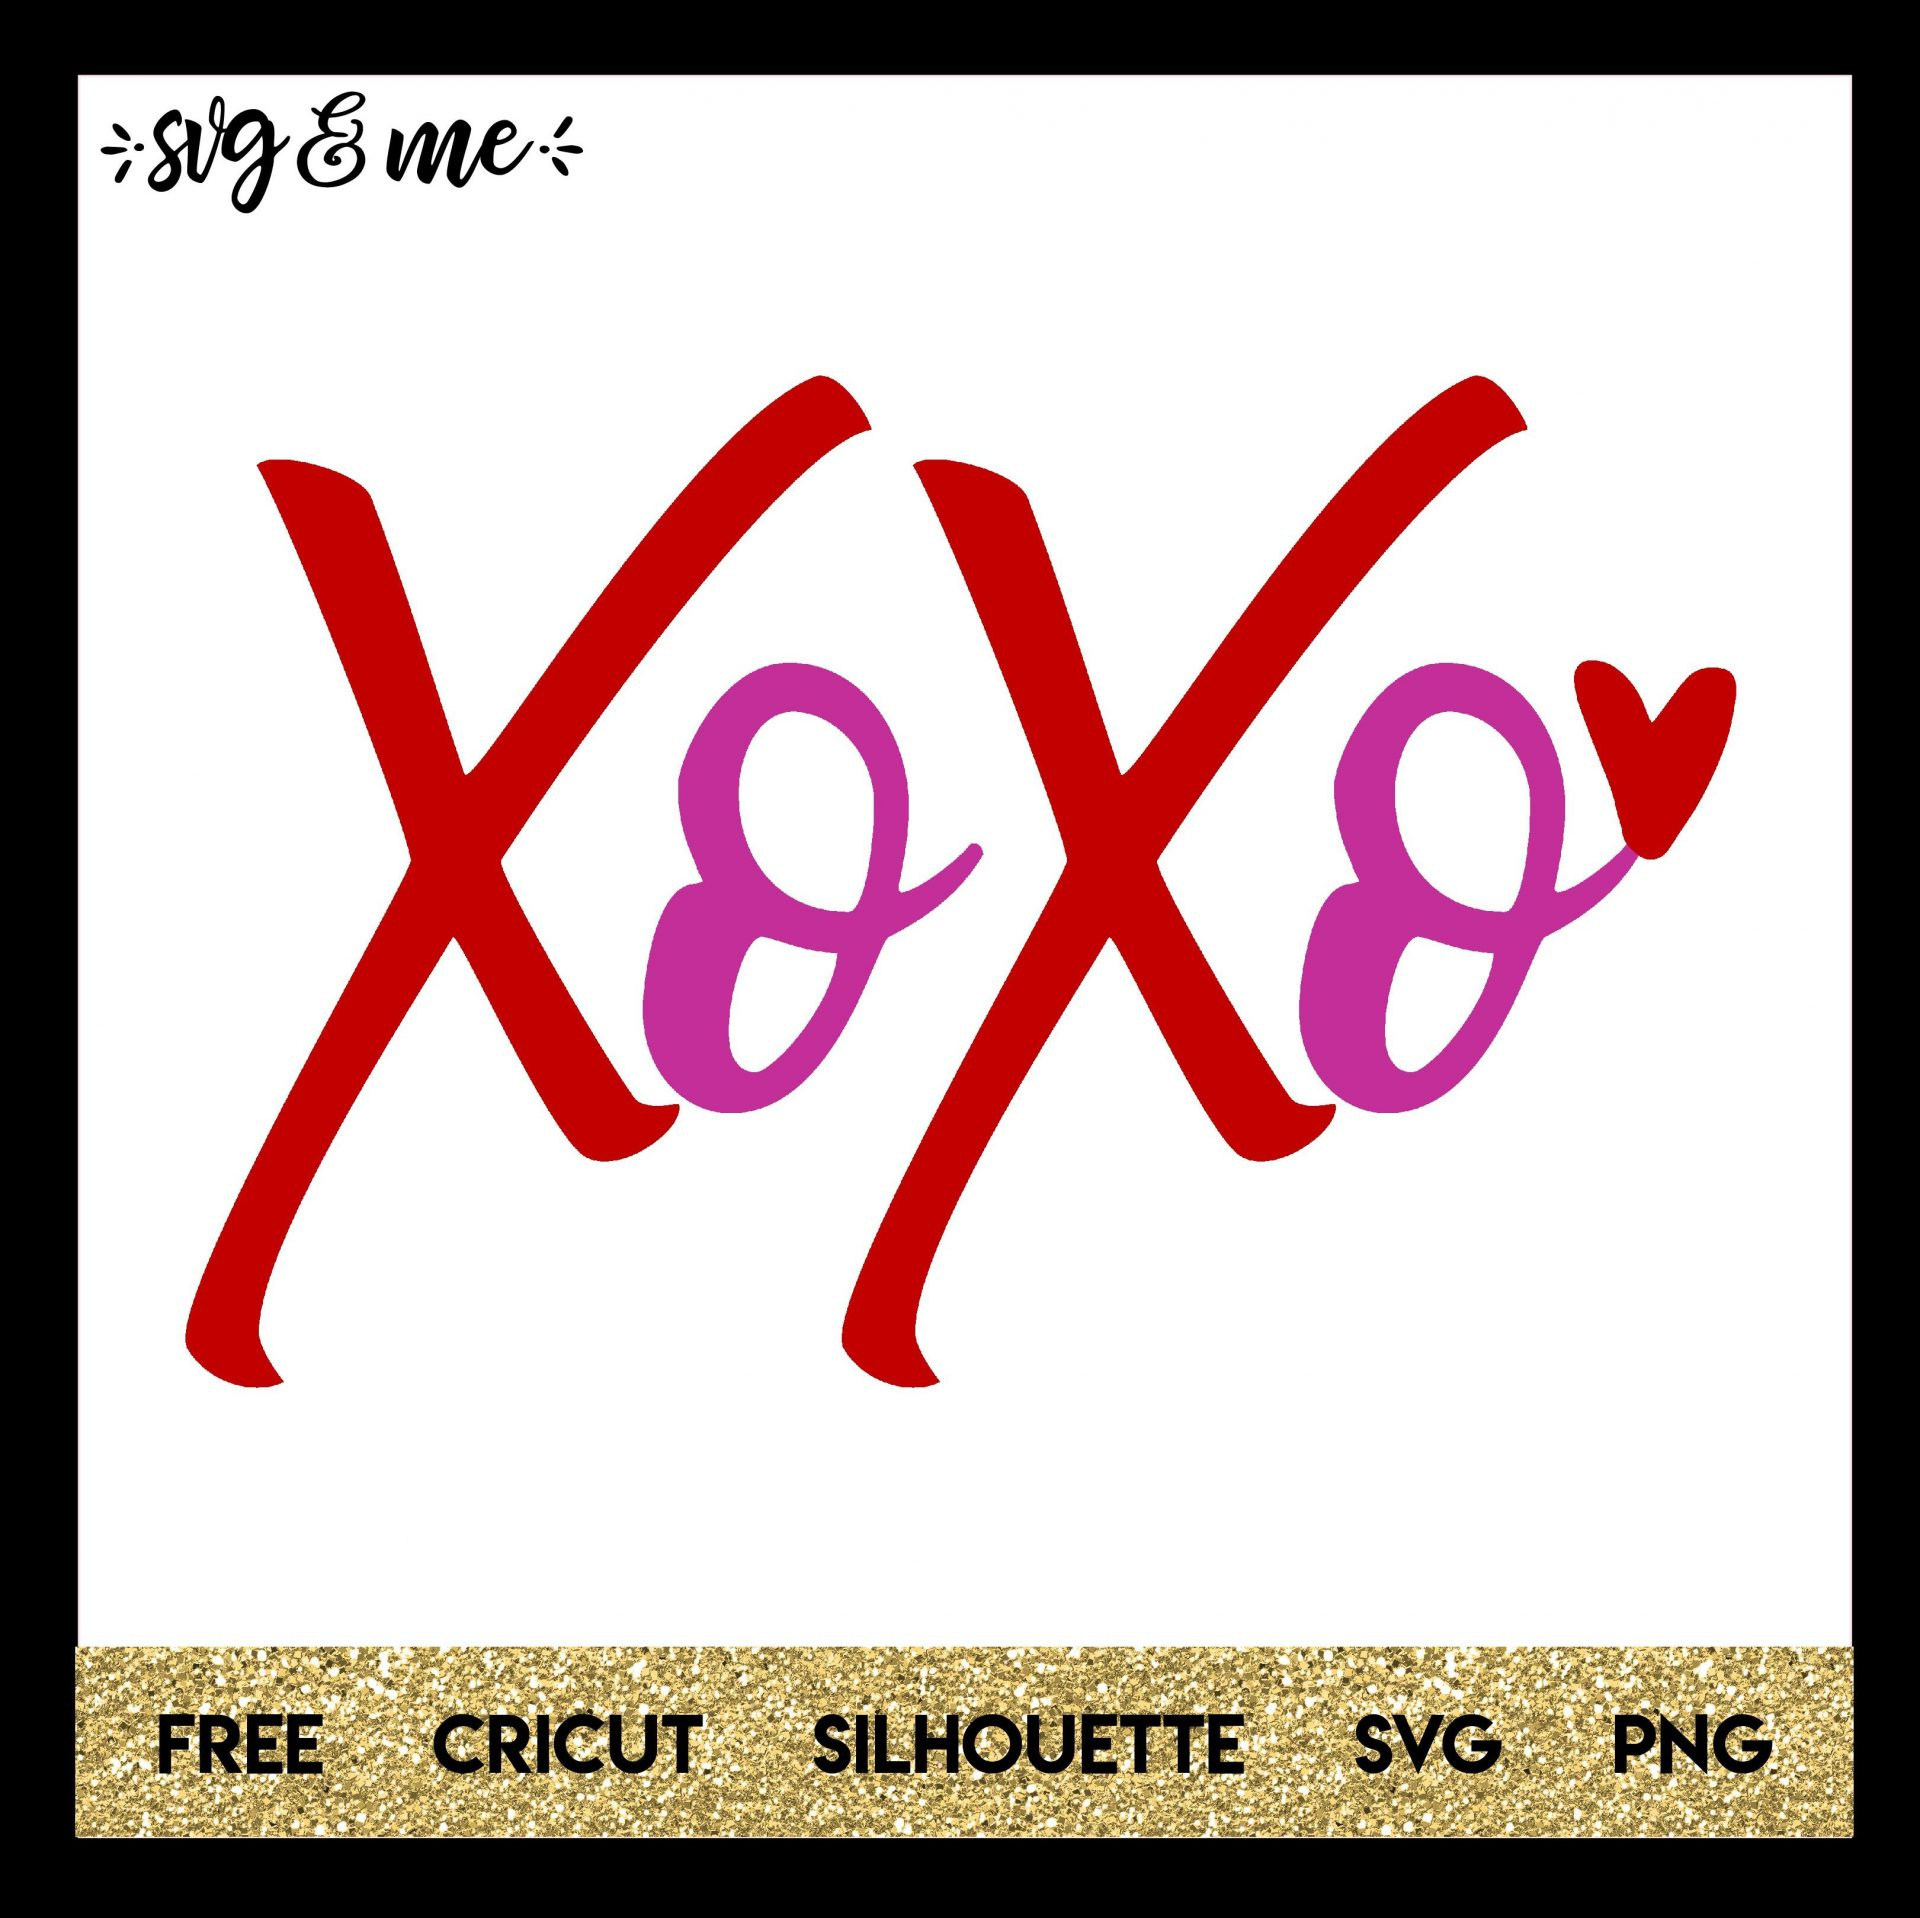 FREE SVG CUT FILE for Cricut, Silhouette and more - XOXO Valentine's Day